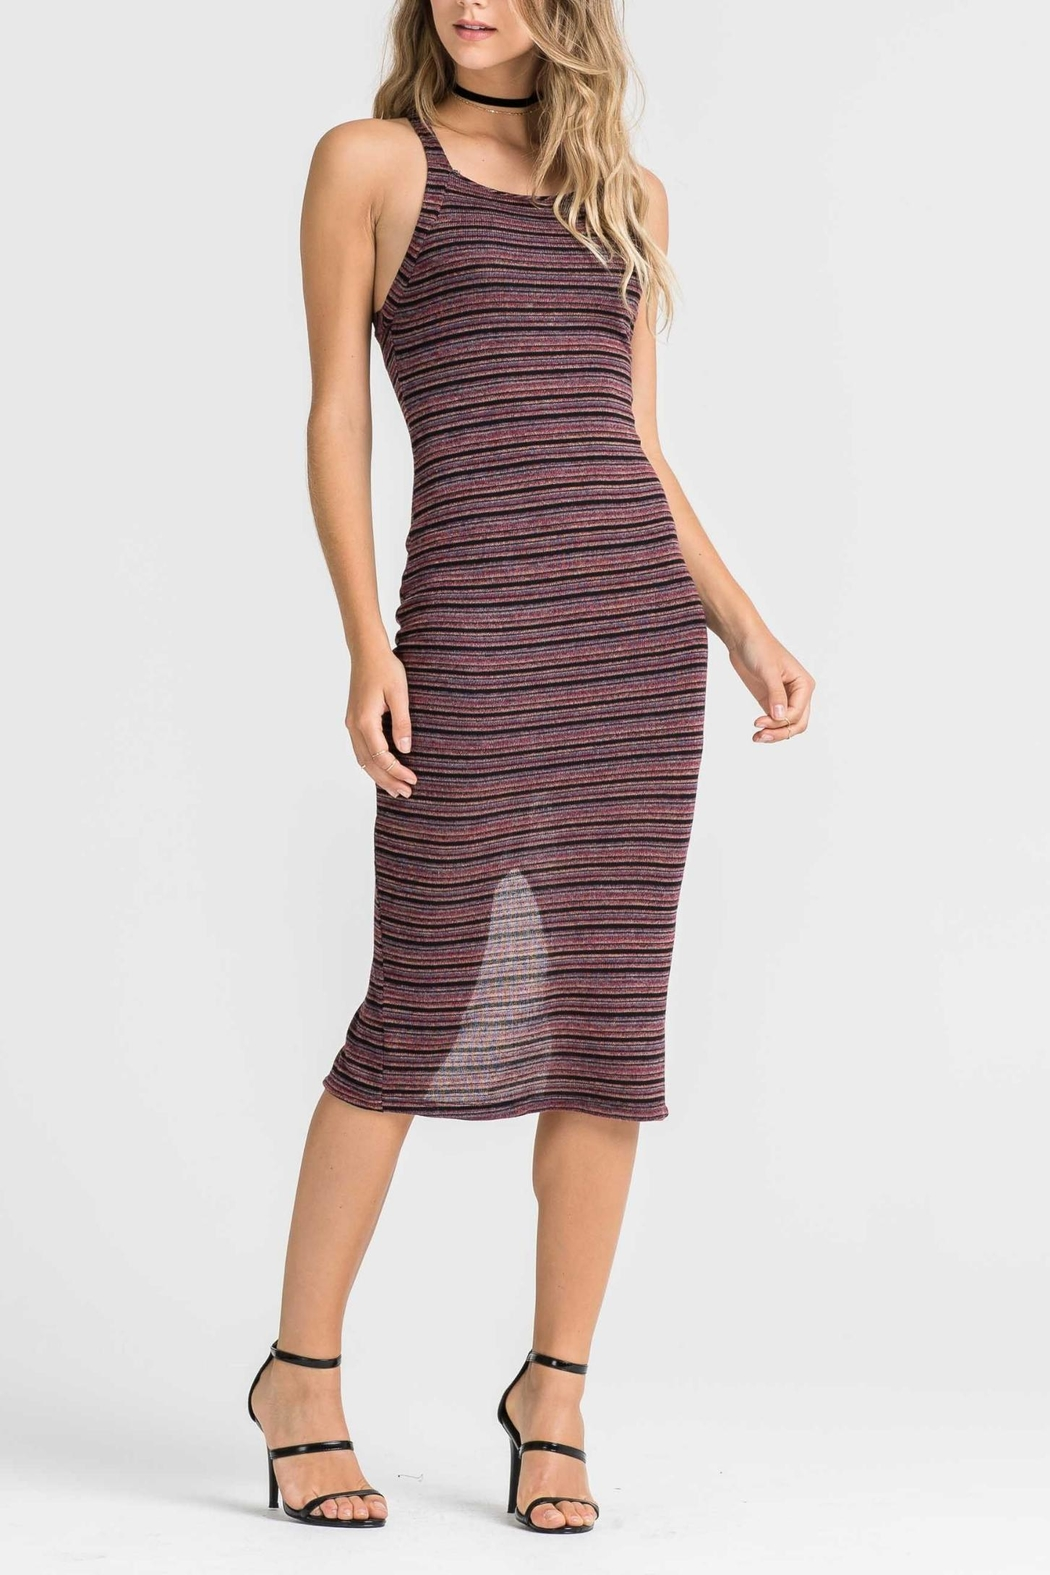 Lush Striped Tank Dress - Main Image